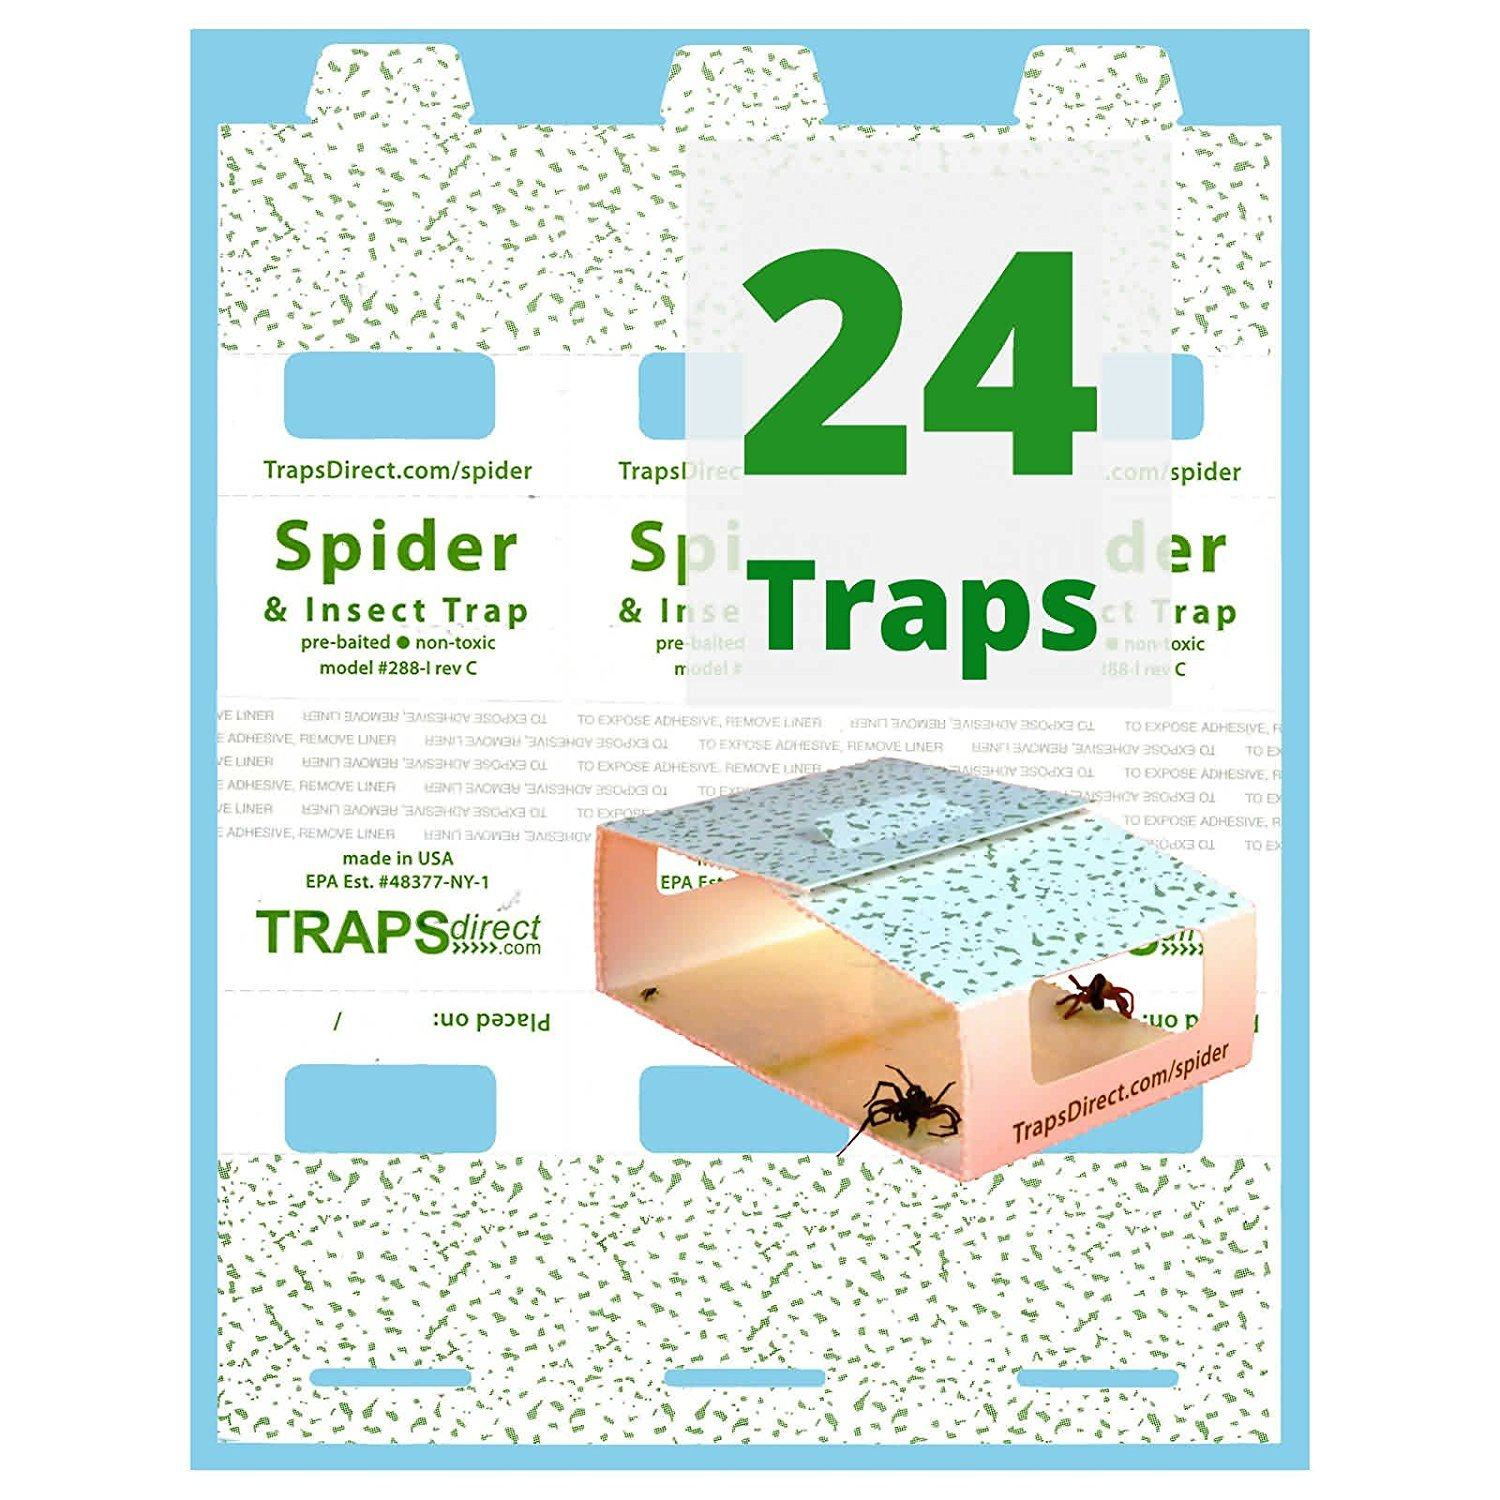 outstanding Spider & Insect Trap